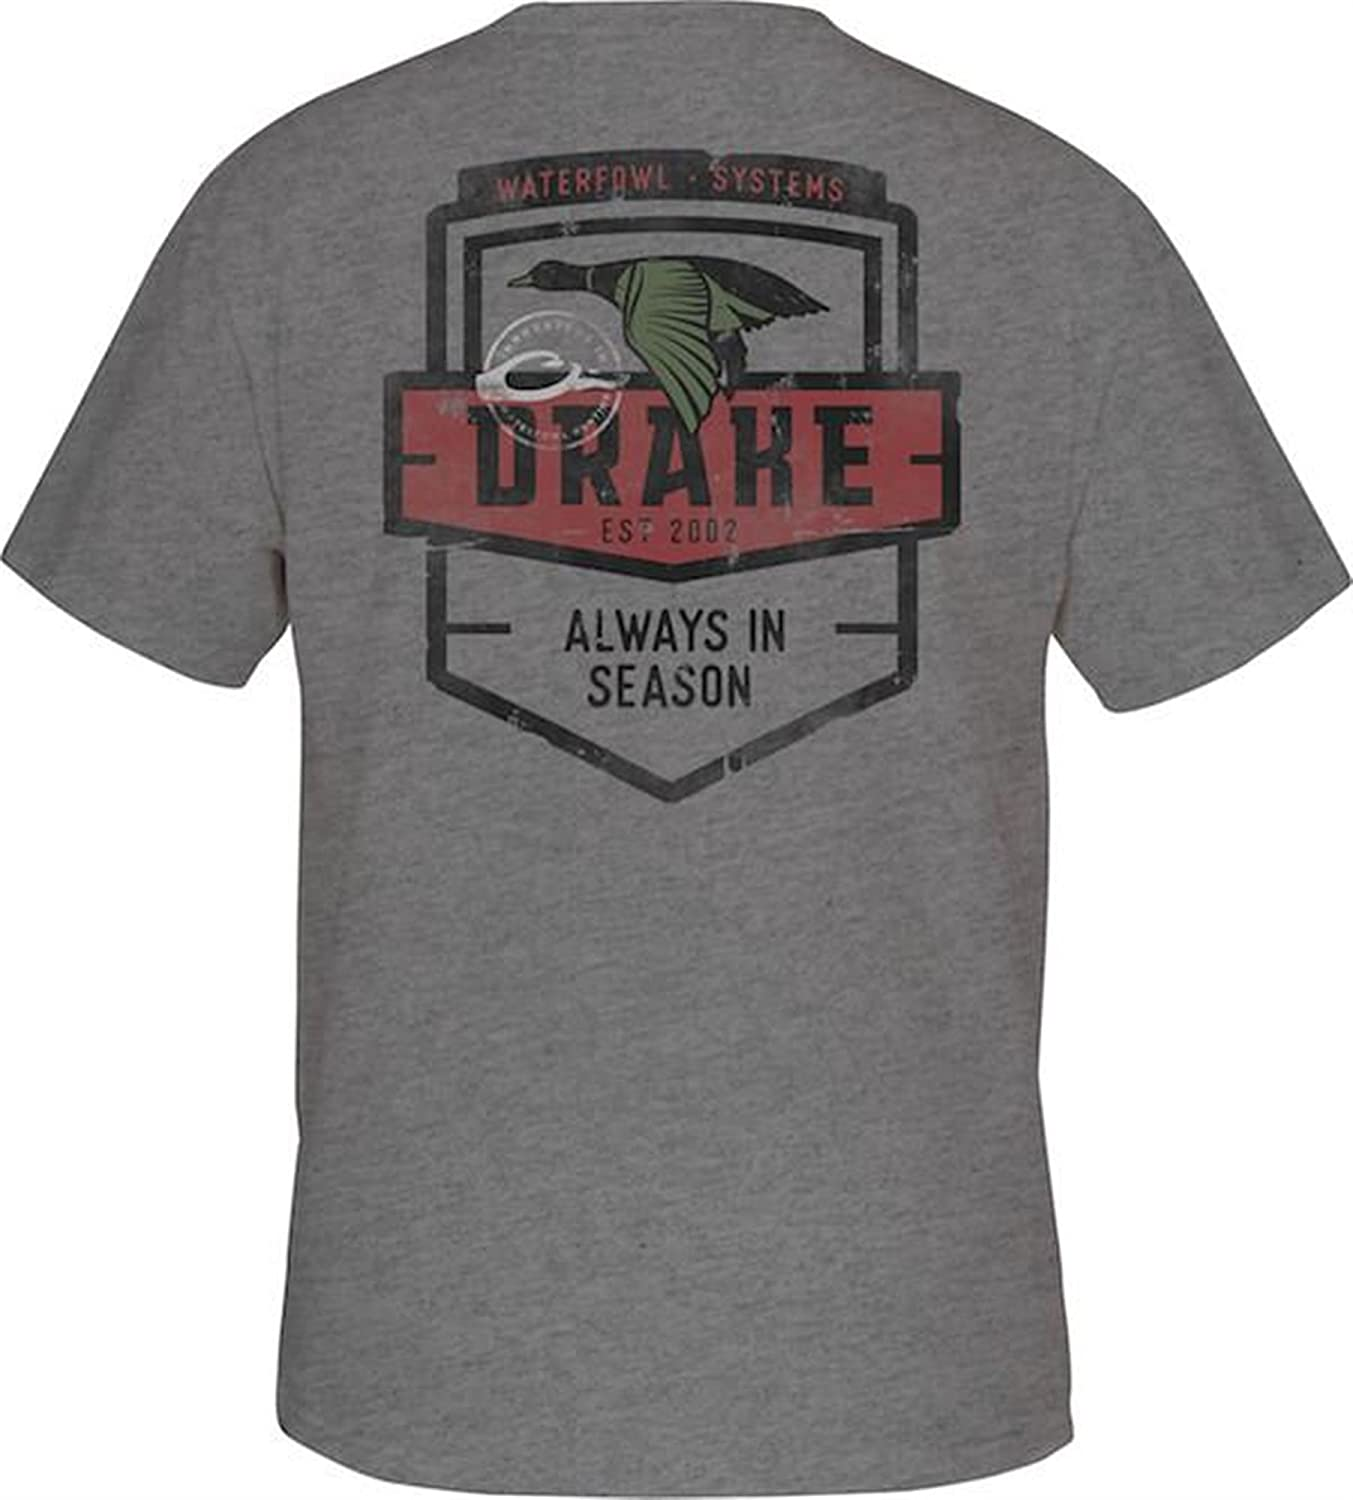 最高の品質の Drake Always In Heather Season Tシャツ半袖 – Graphite Heather ( Always – XLサイズ) B07B543GGR, 知多郡:e630b7ab --- senas.4x4.lt